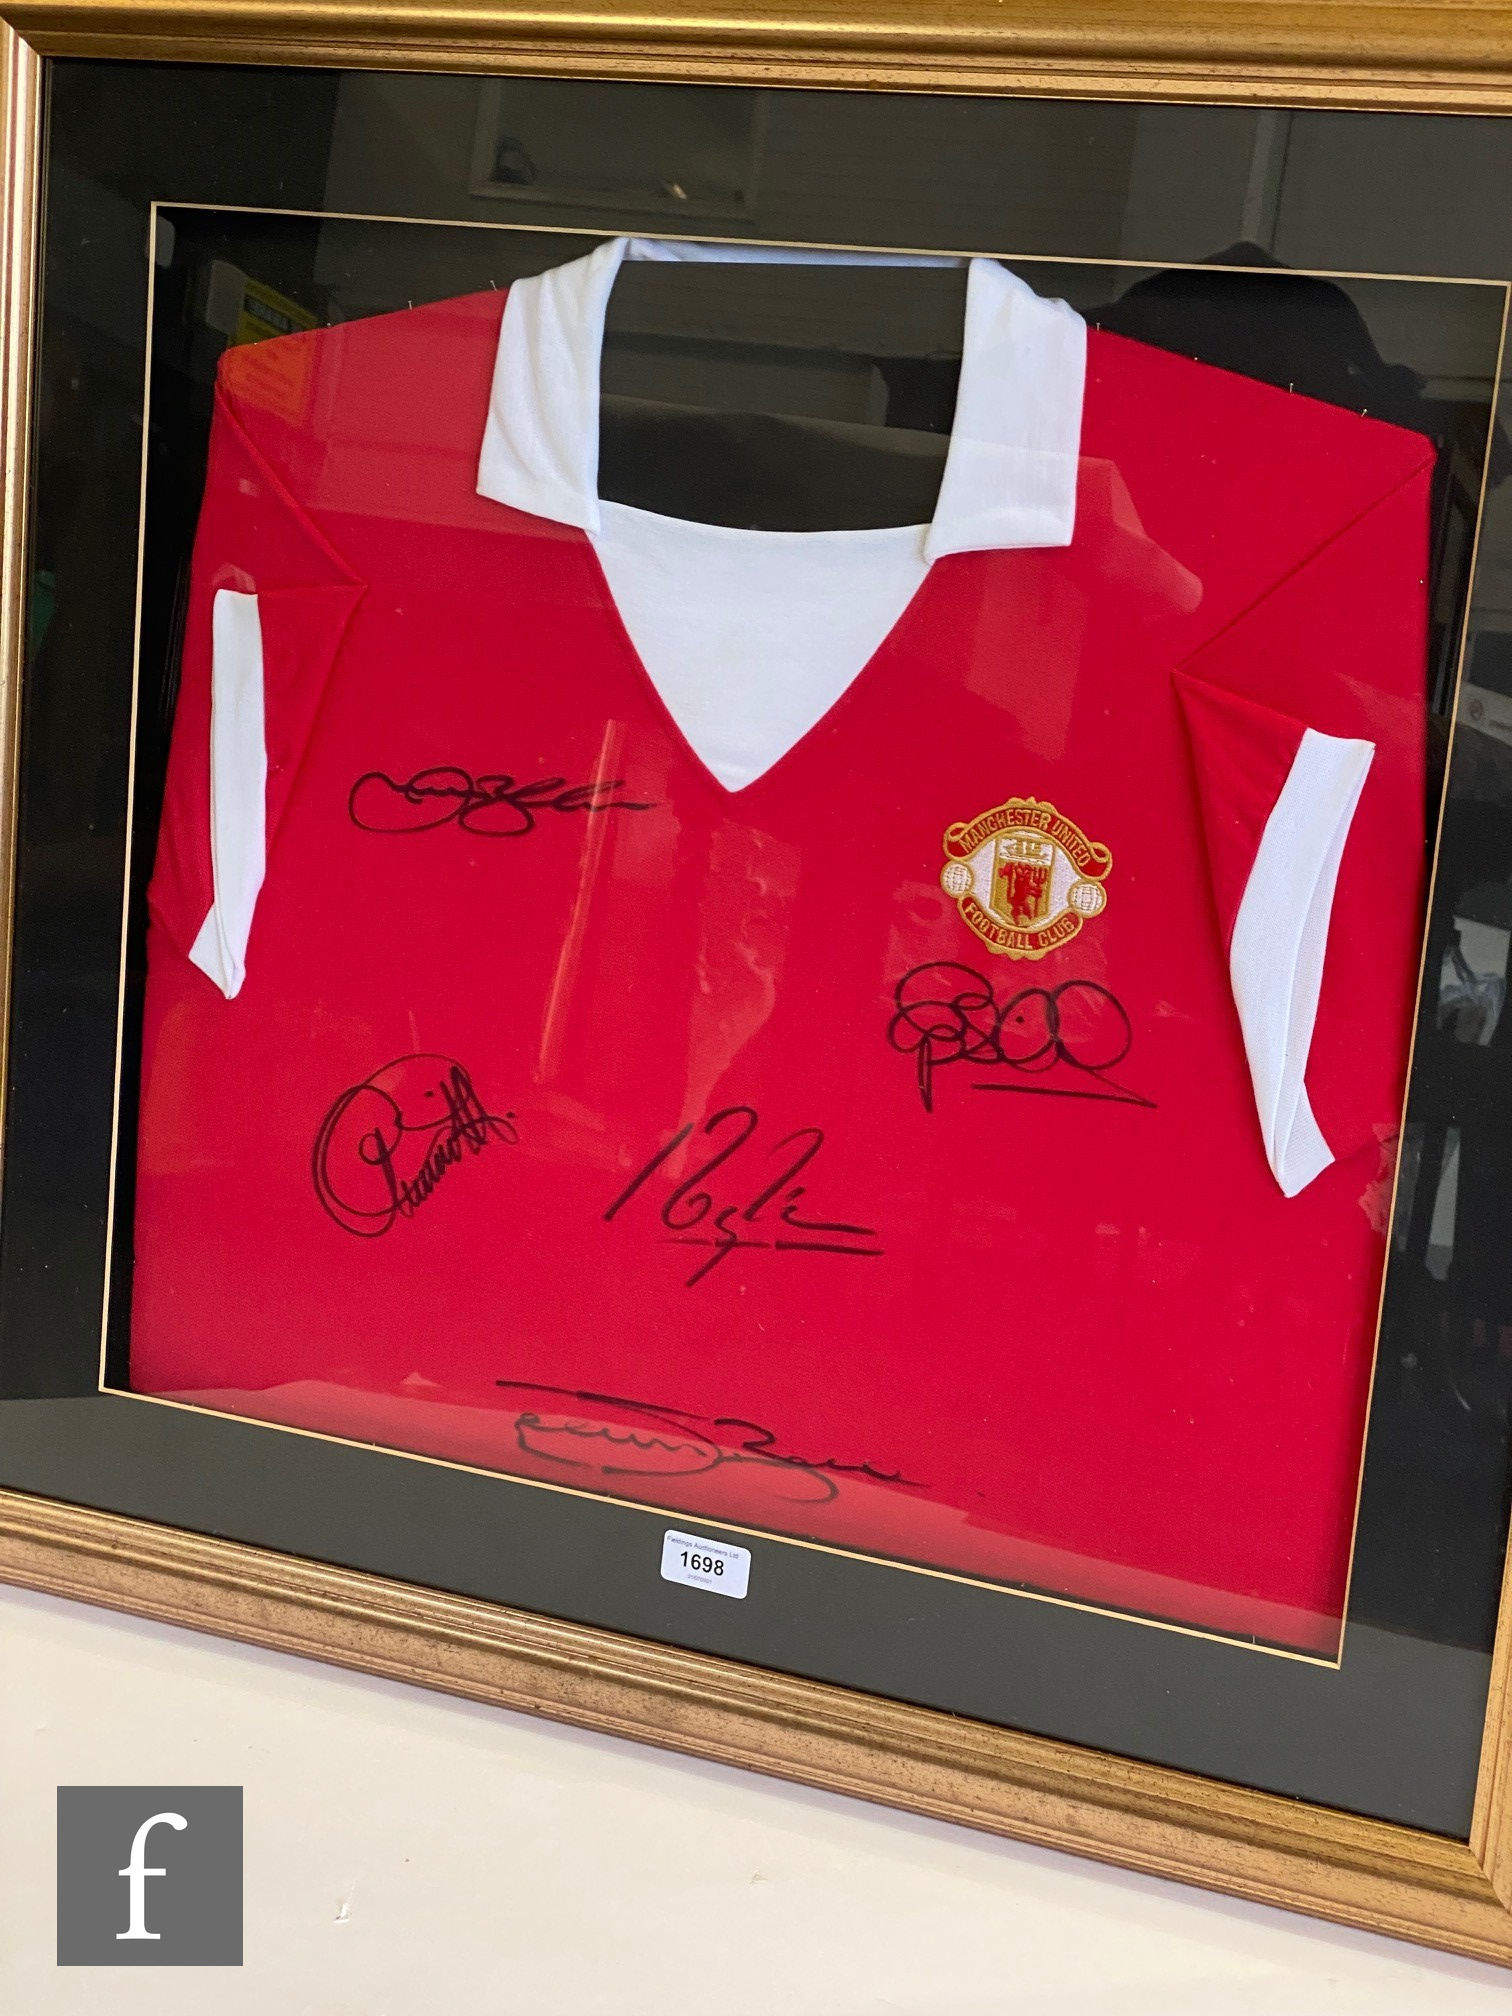 A Manchester United red and white shirt signed by five captains, Steve Bruce, Eric Cantona, Peter